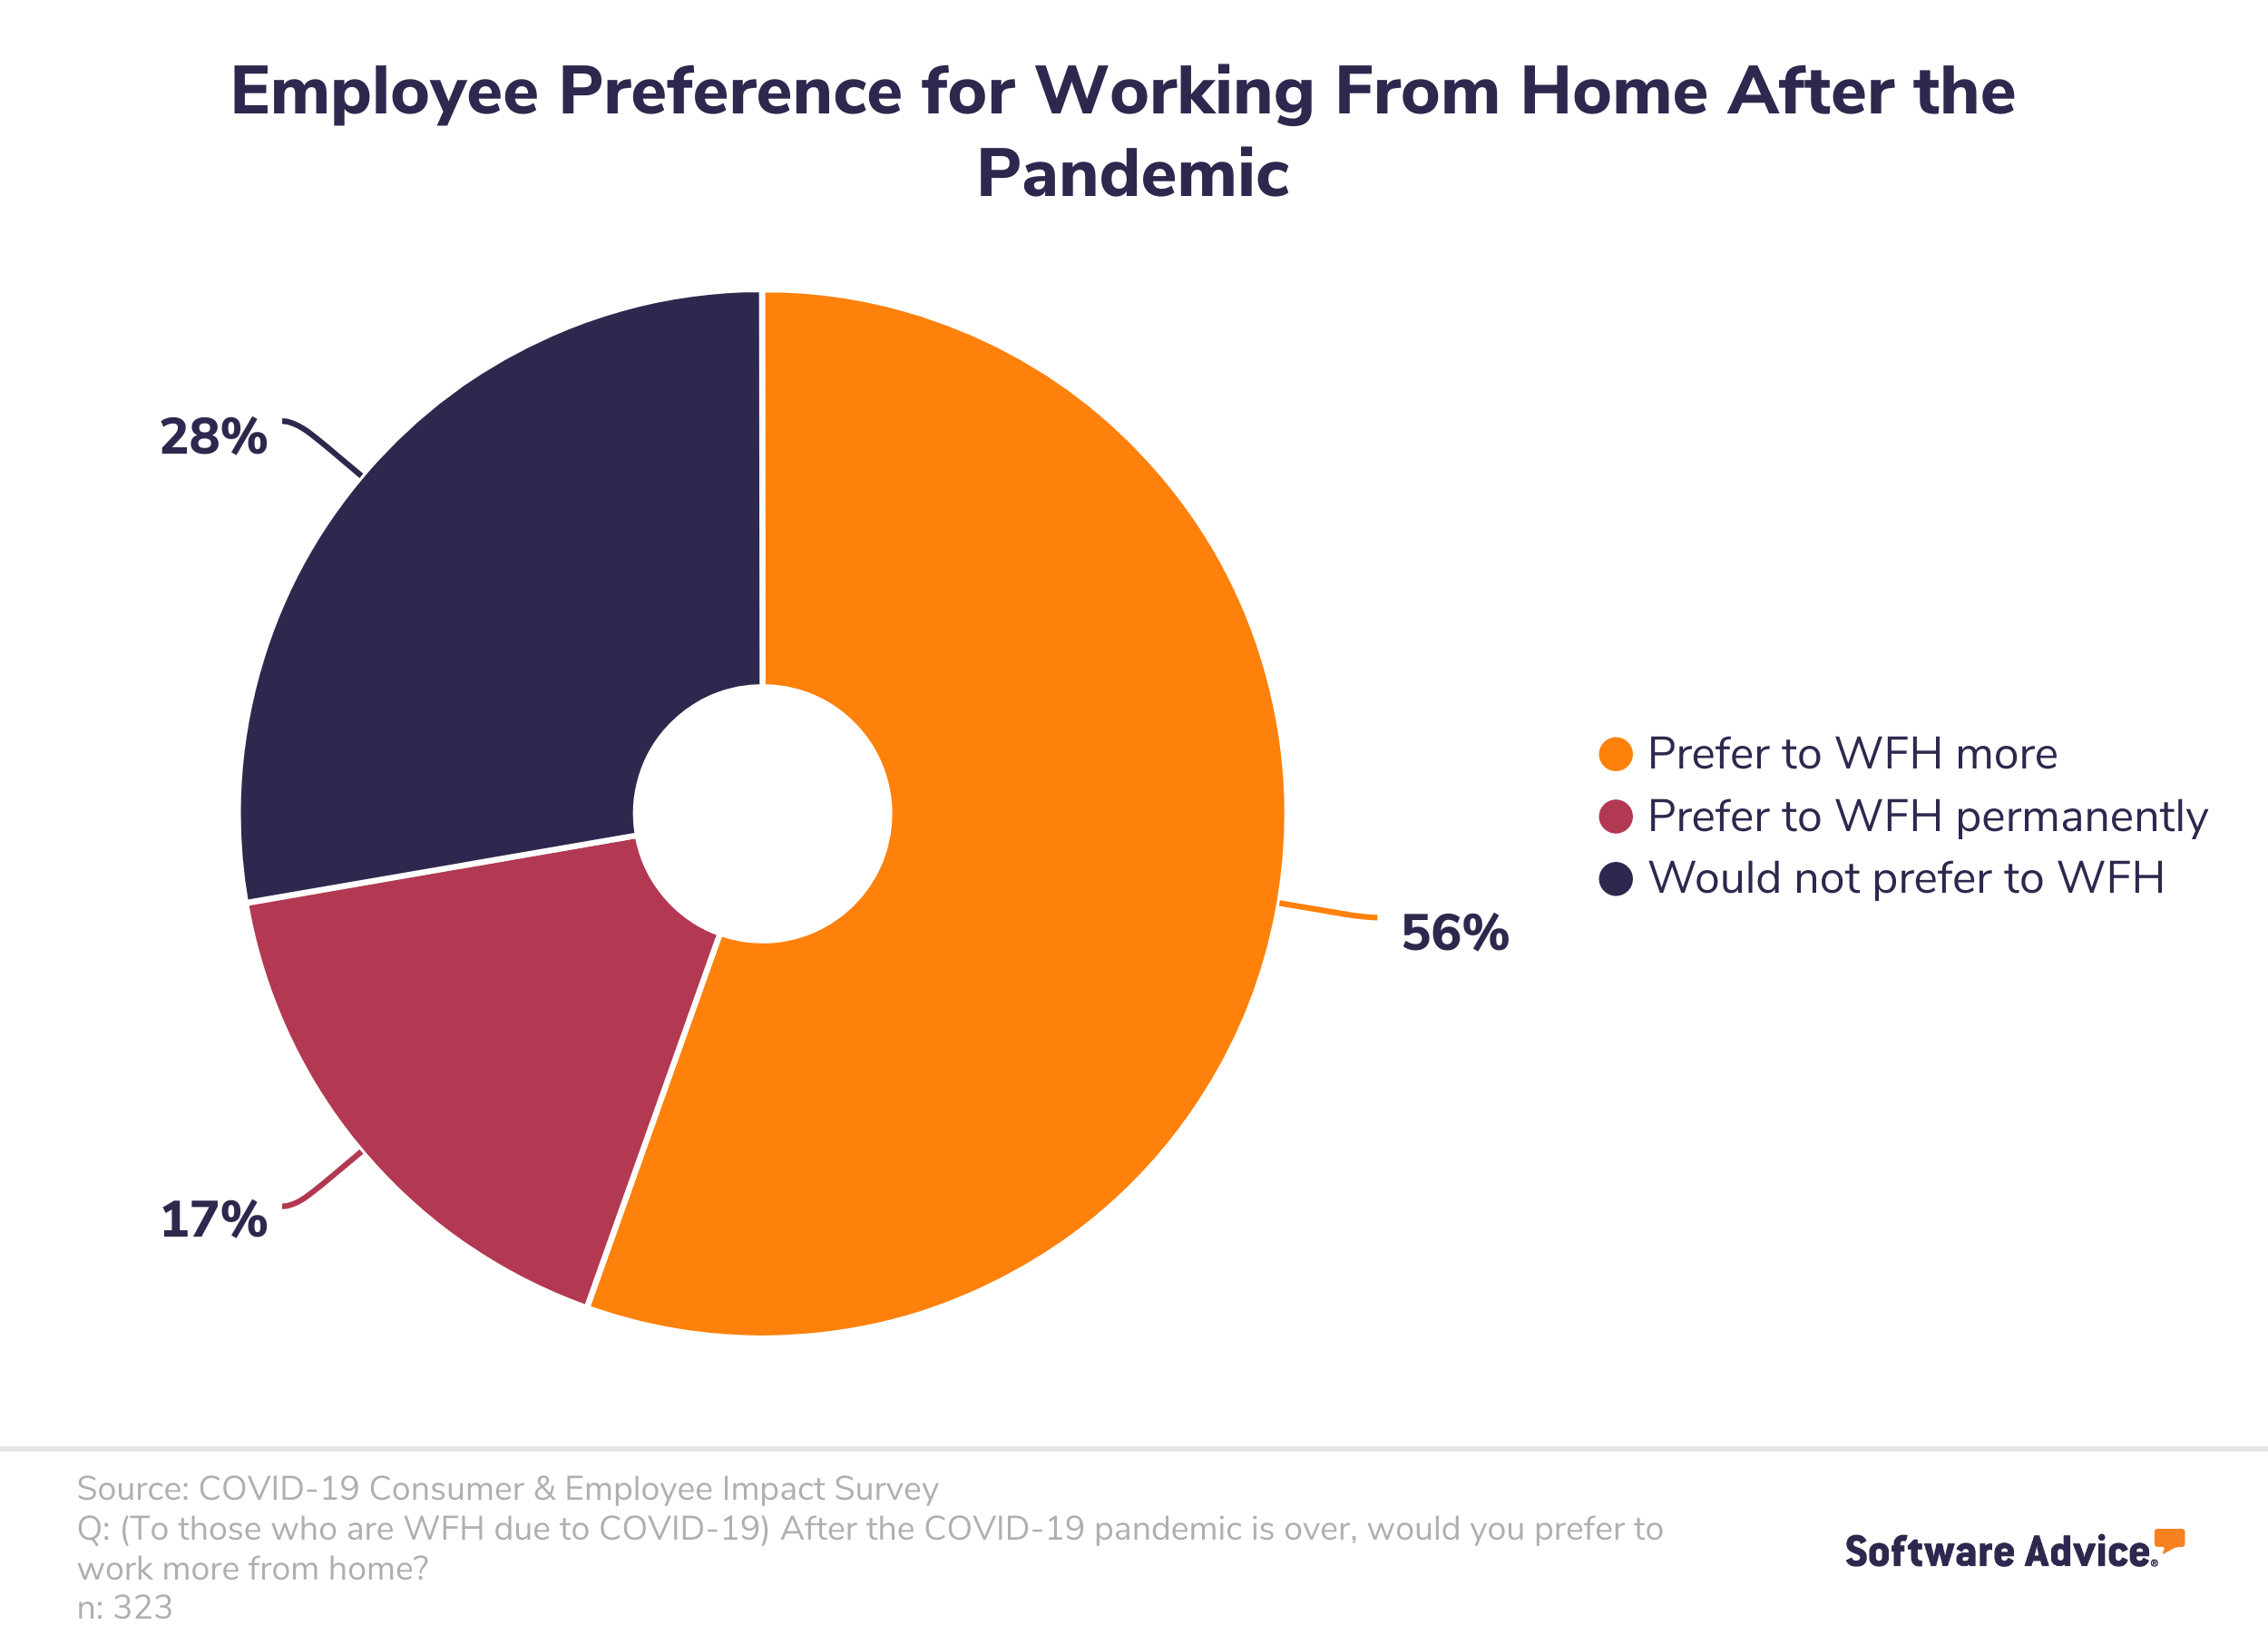 Employees want to continue working from home after COVID